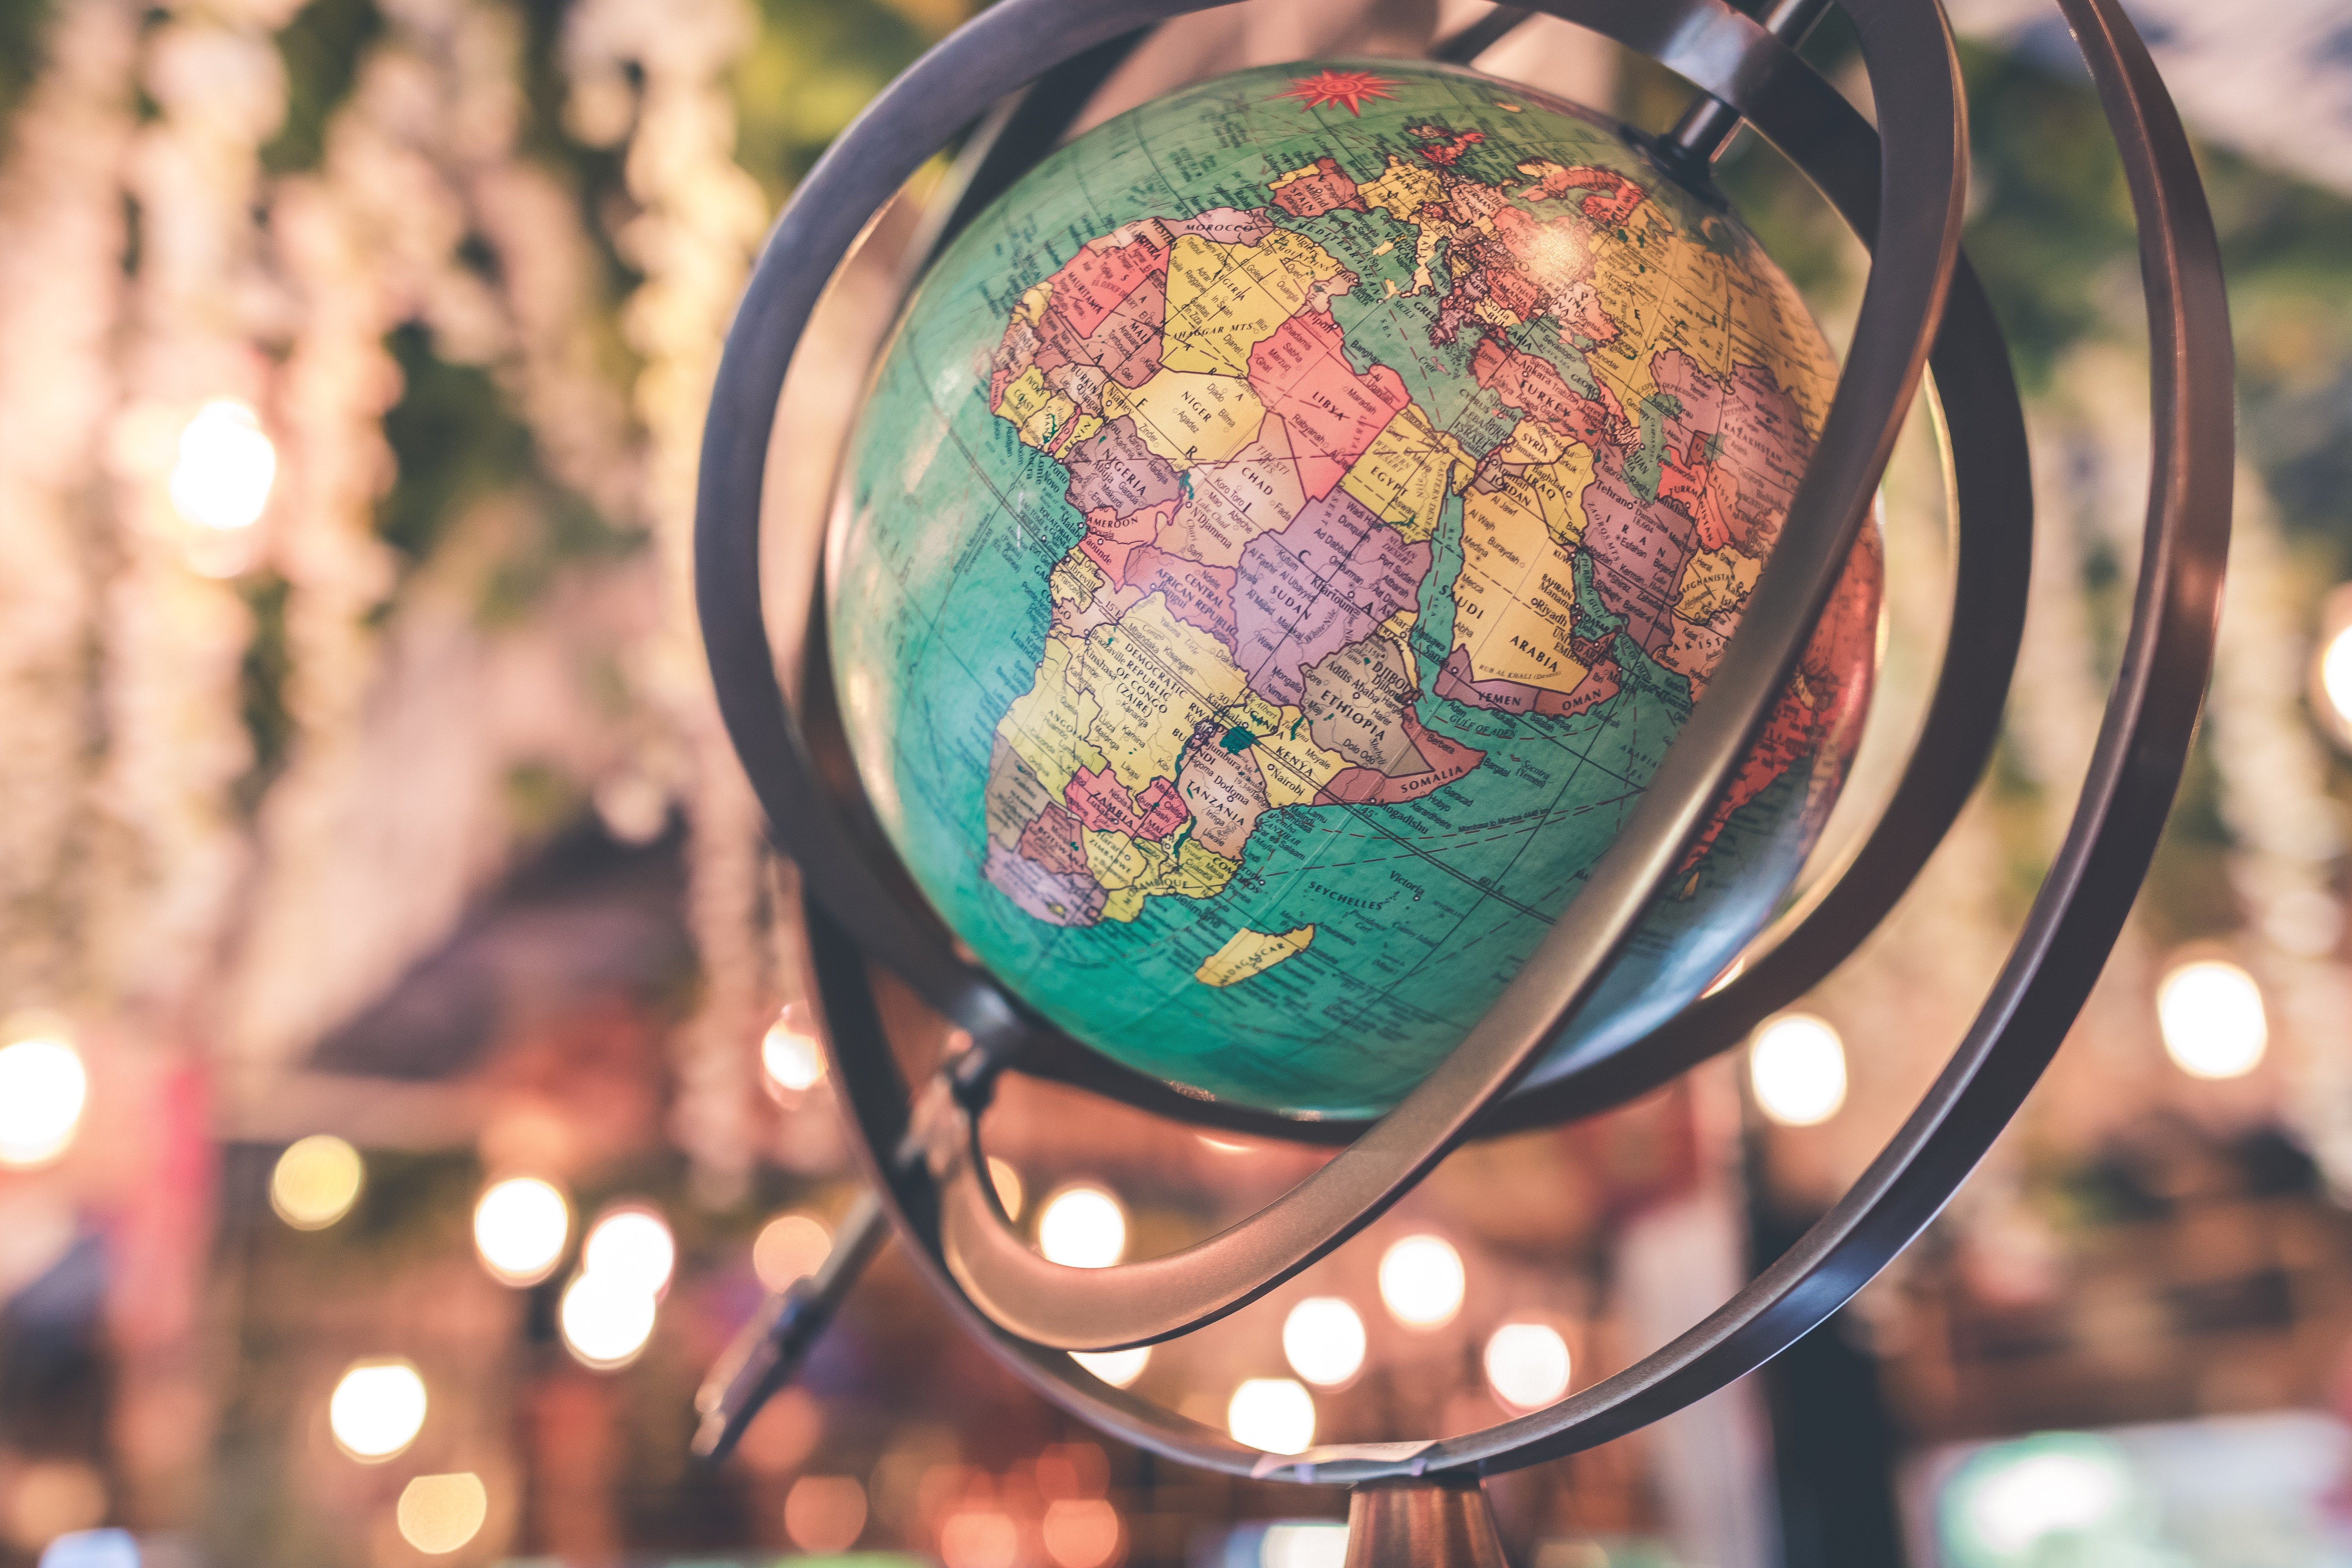 """Print out """"You Mean The World To Me"""" on gold foil paper and cover a globe similar  to this one in it.   Photo: Pexels."""